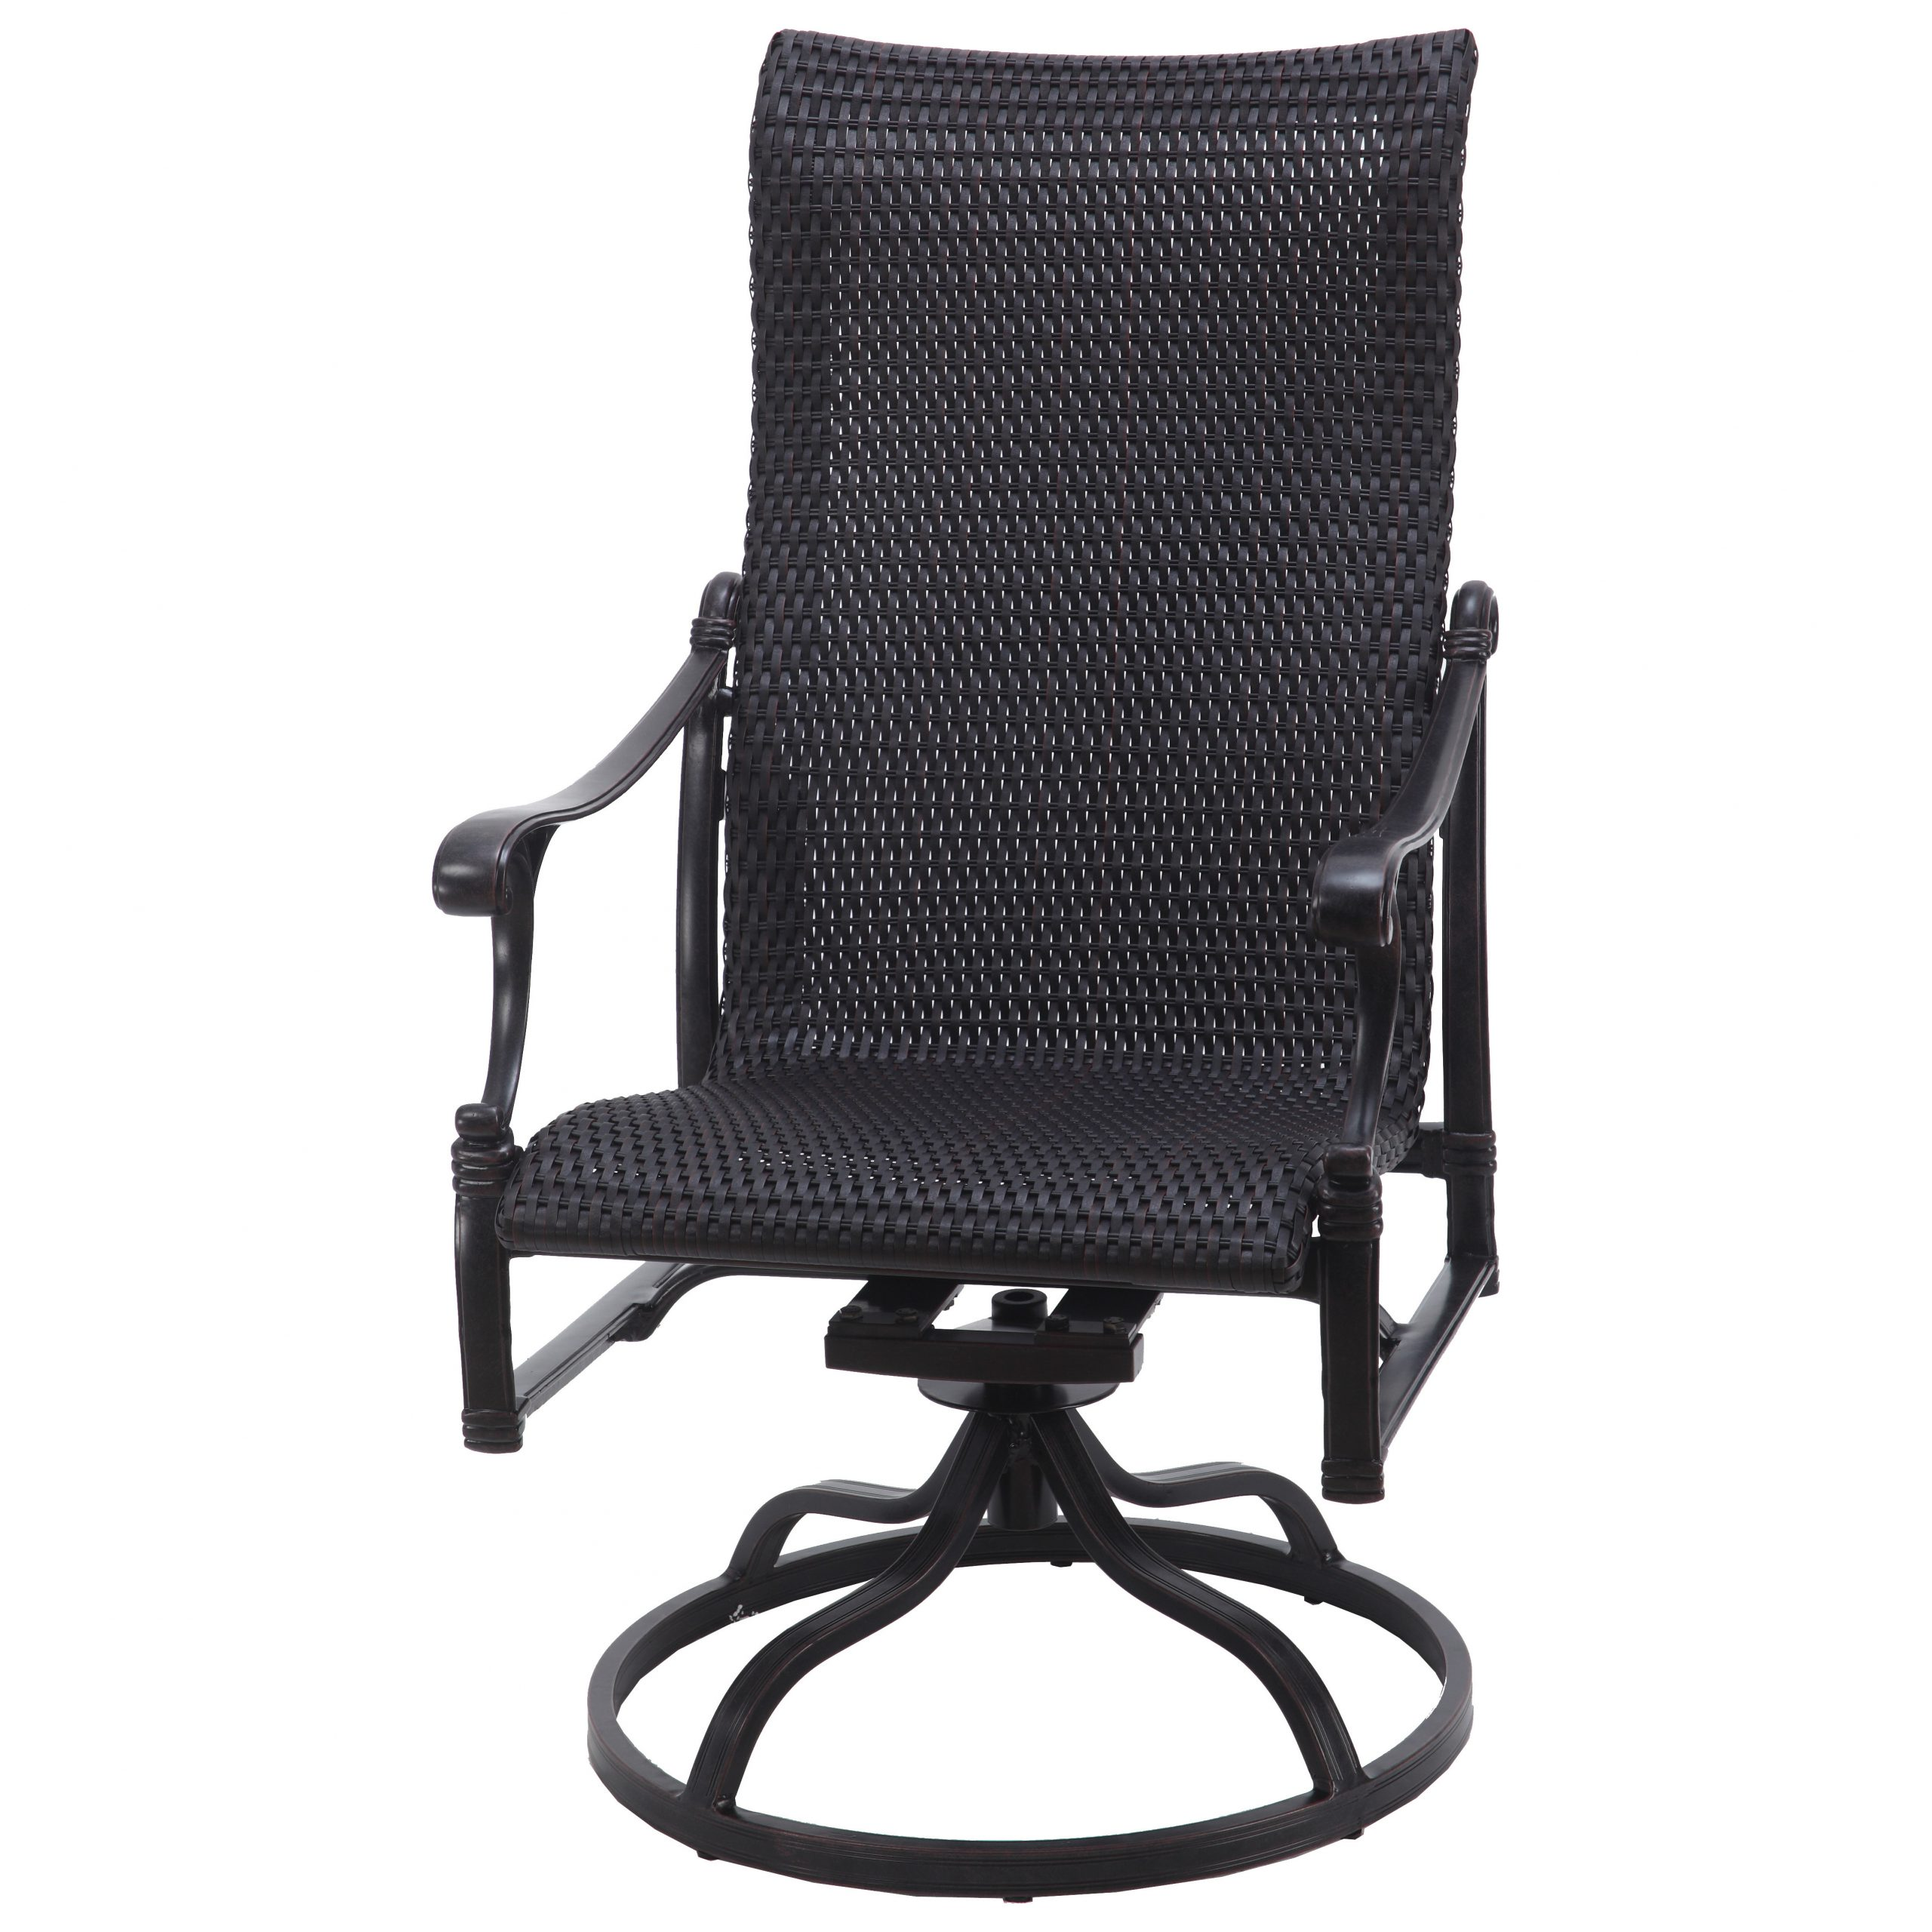 Gensun Michigan Woven Cast Aluminum High Back Swivel Rocker Intended For Woven High Back Swivel Chairs (Image 5 of 25)